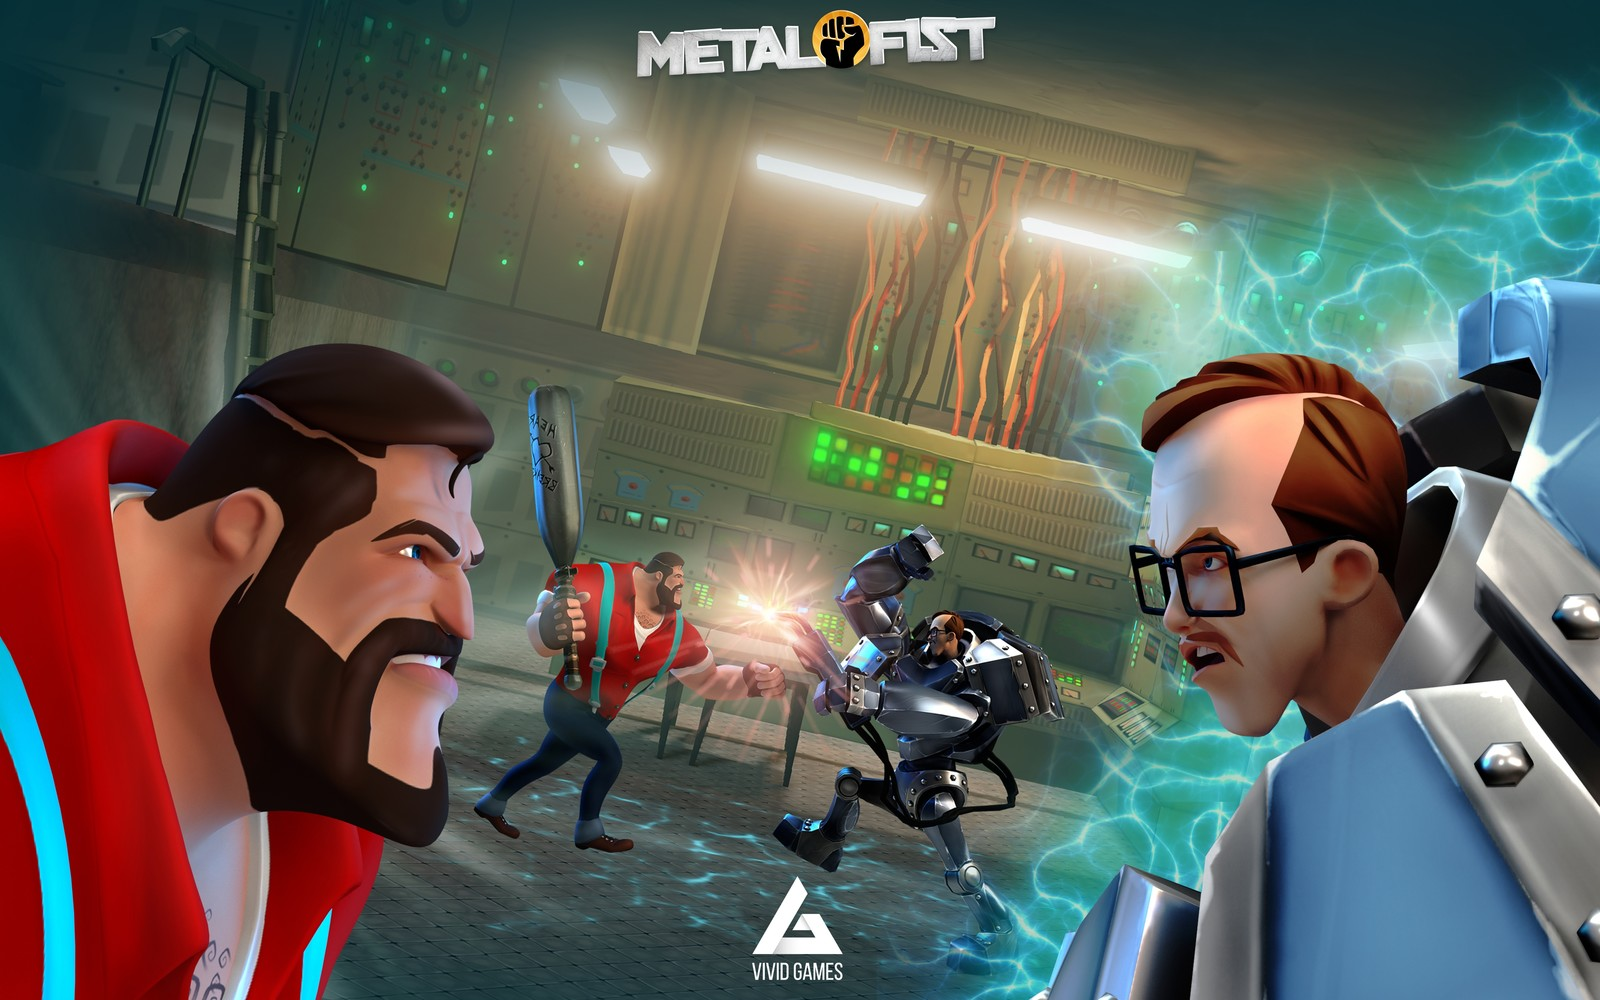 Gamescom 2017: Metal Fist is a melee brawler for mobile from Vivid Games